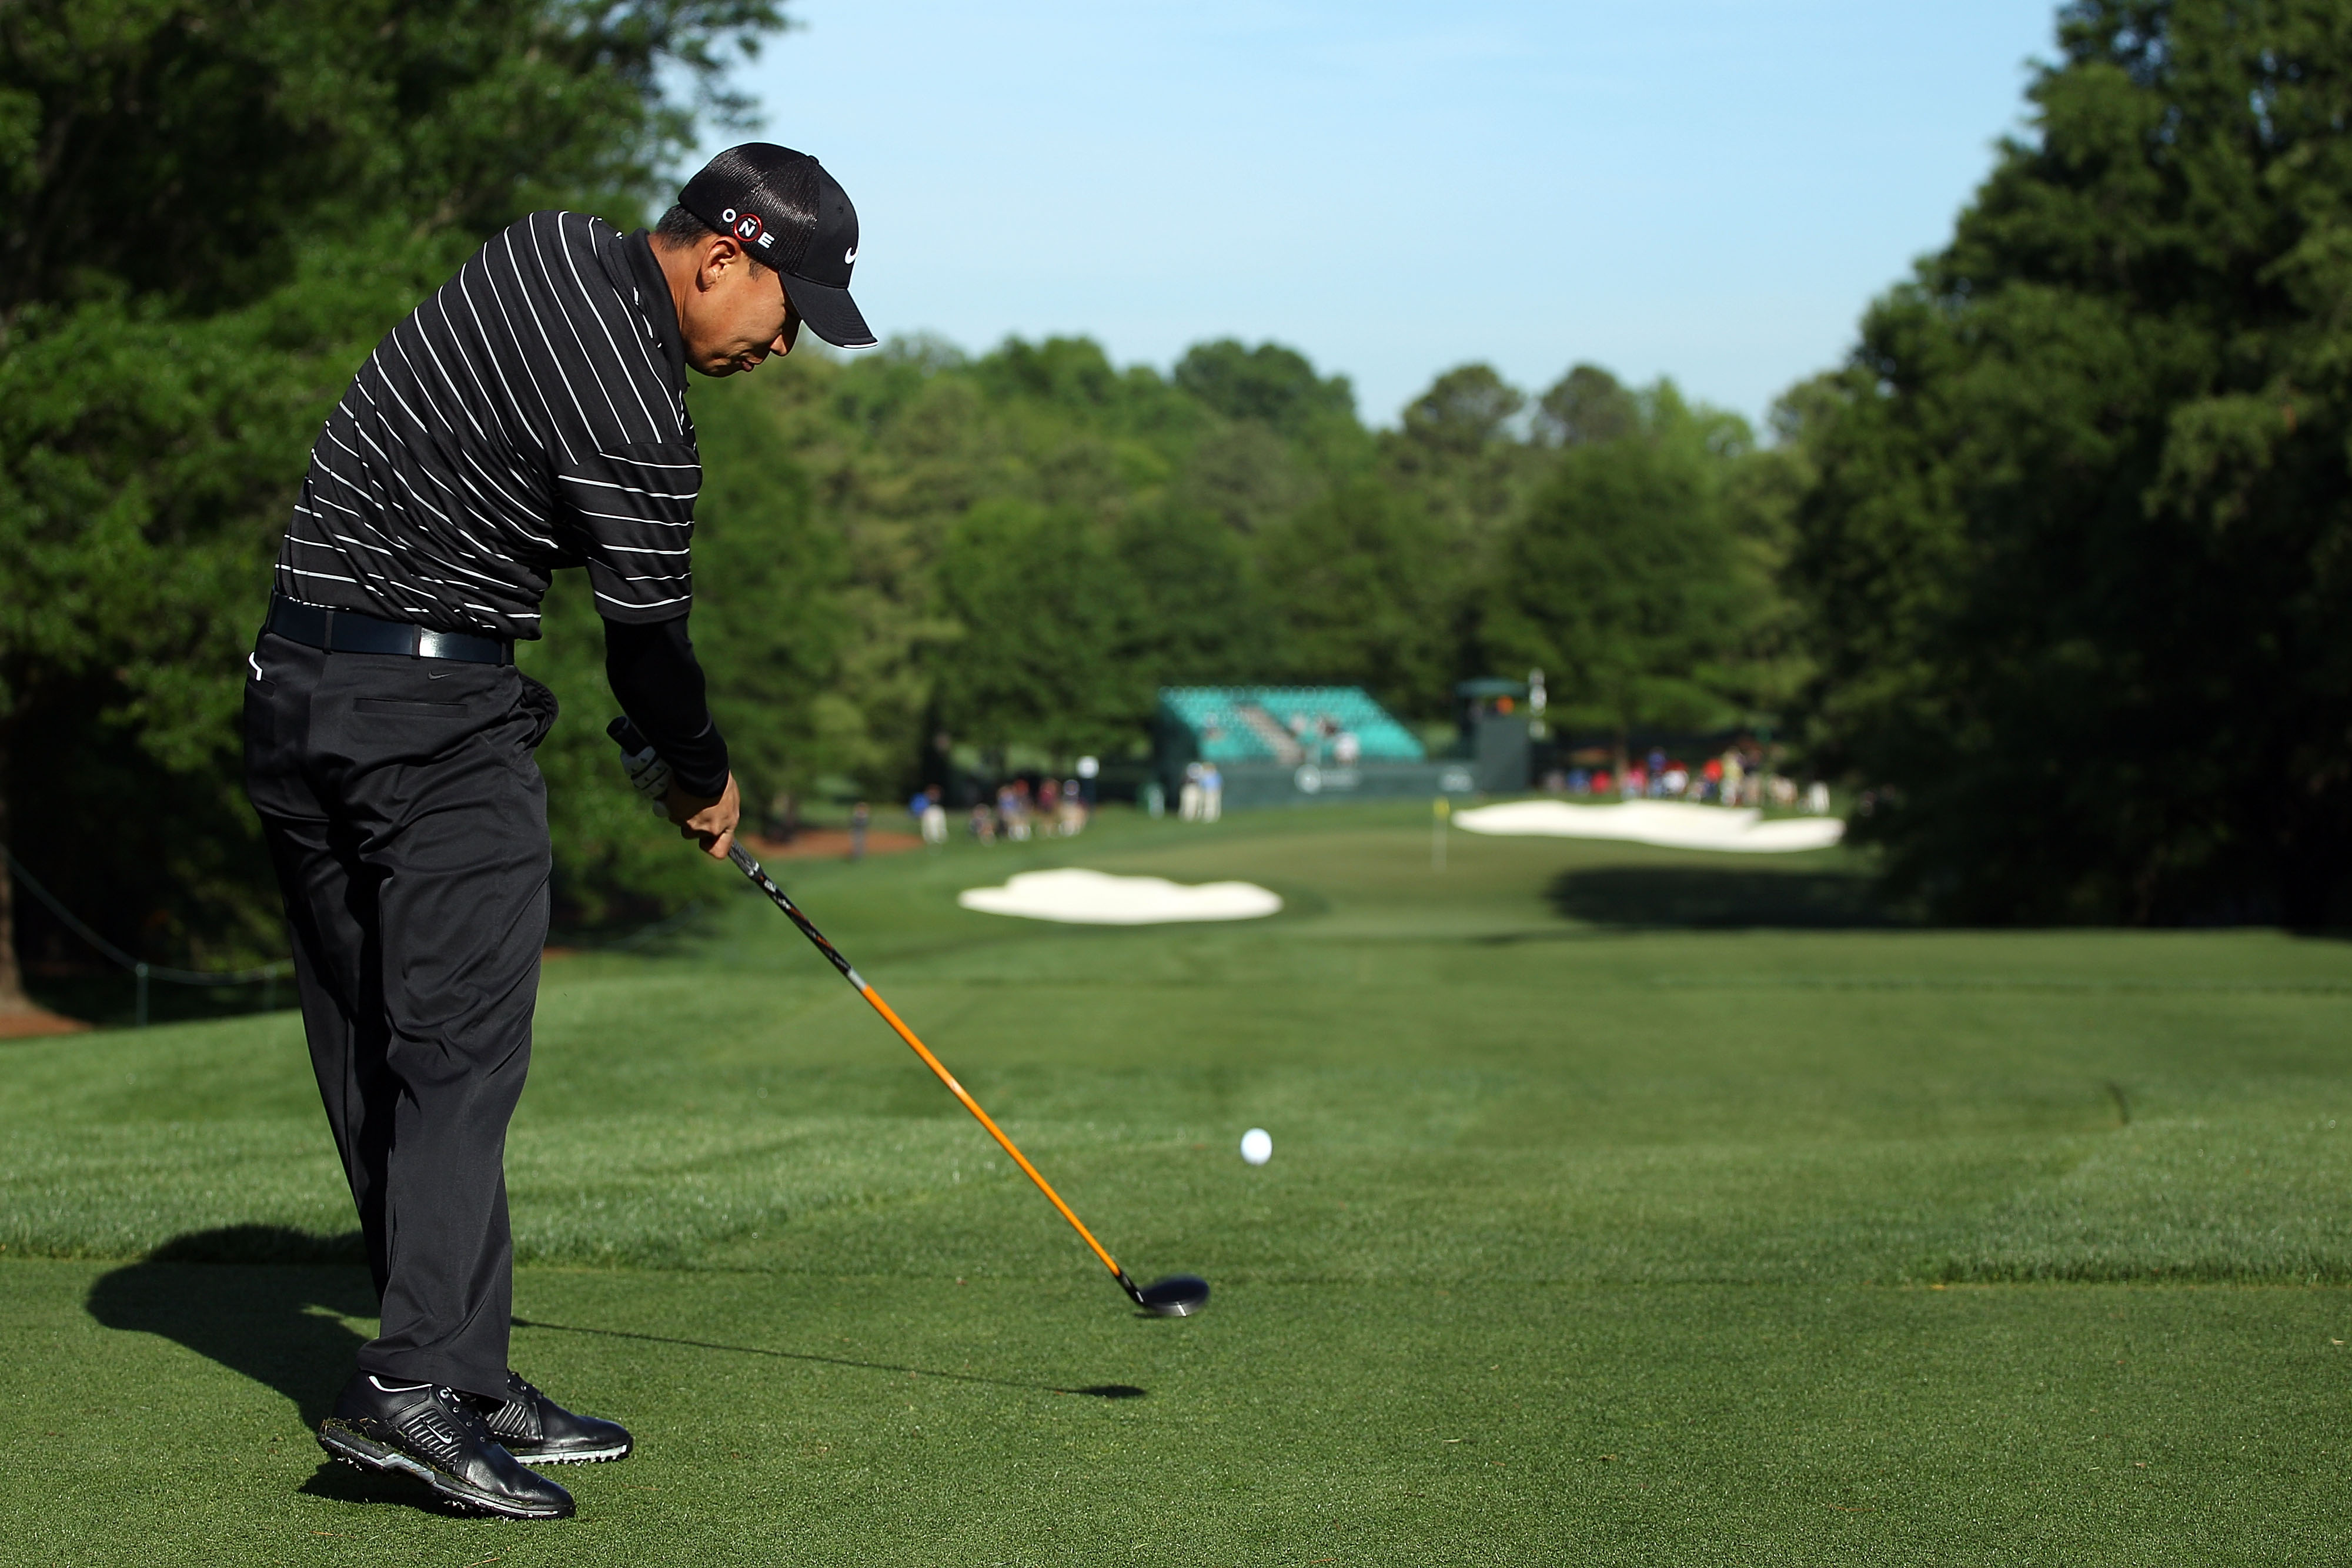 CHARLOTTE, NC - APRIL 29:  Anthony Kim hits his tee shot on the sixth hole during the first round of the 2010 Quail Hollow Championship at the Quail Hollow Club on April 29, 2010 in Charlotte, North Carolina.  (Photo by Scott Halleran/Getty Images)